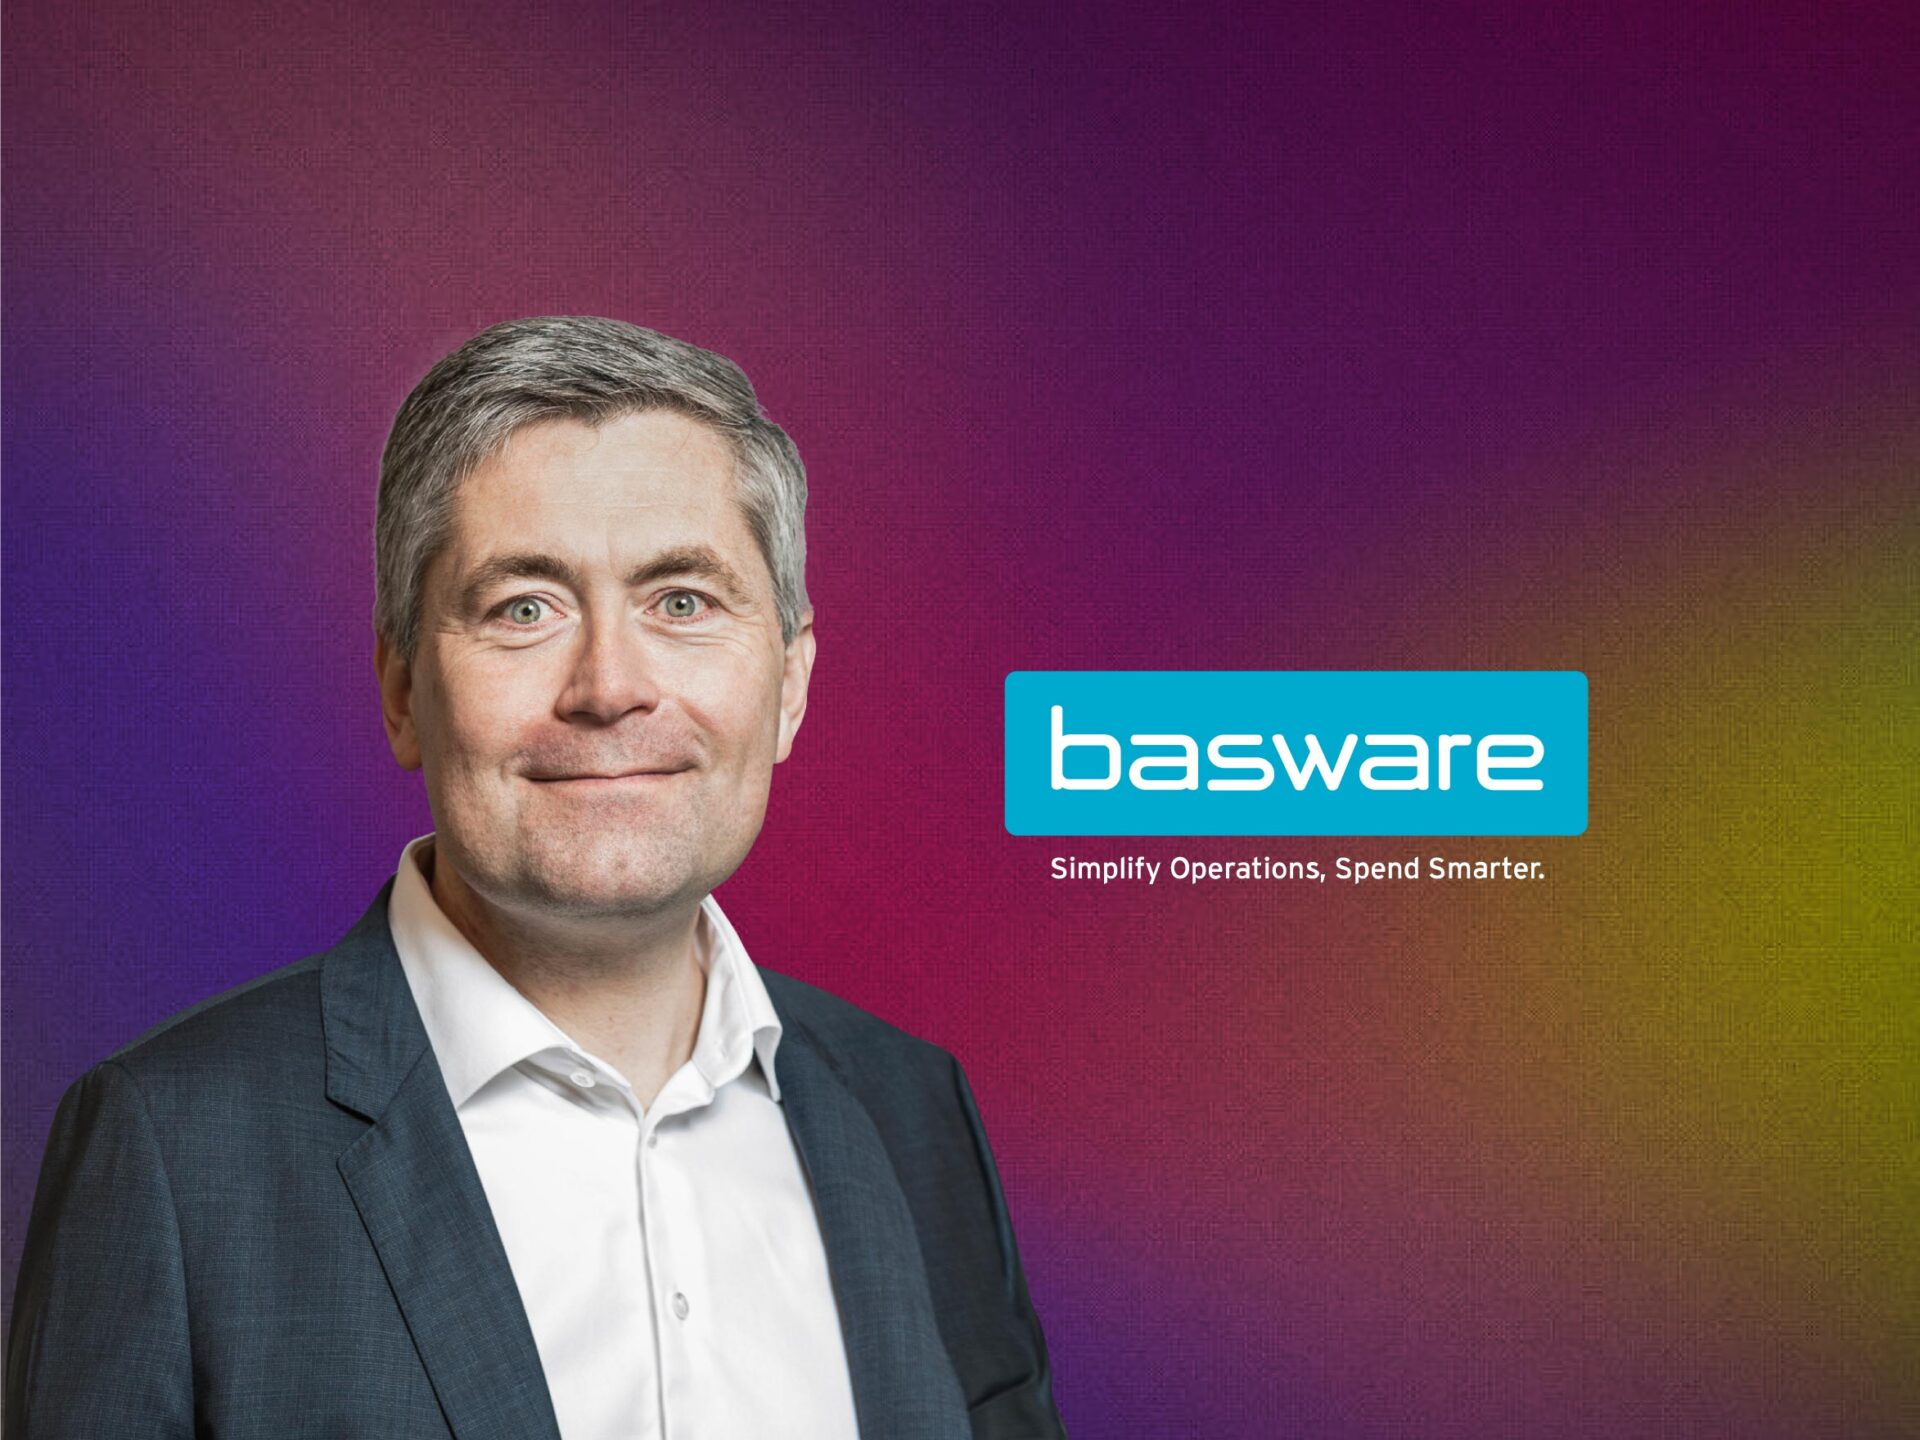 Global Fintech Interview with Mogens Helmuth Pedersen, CTO at Basware